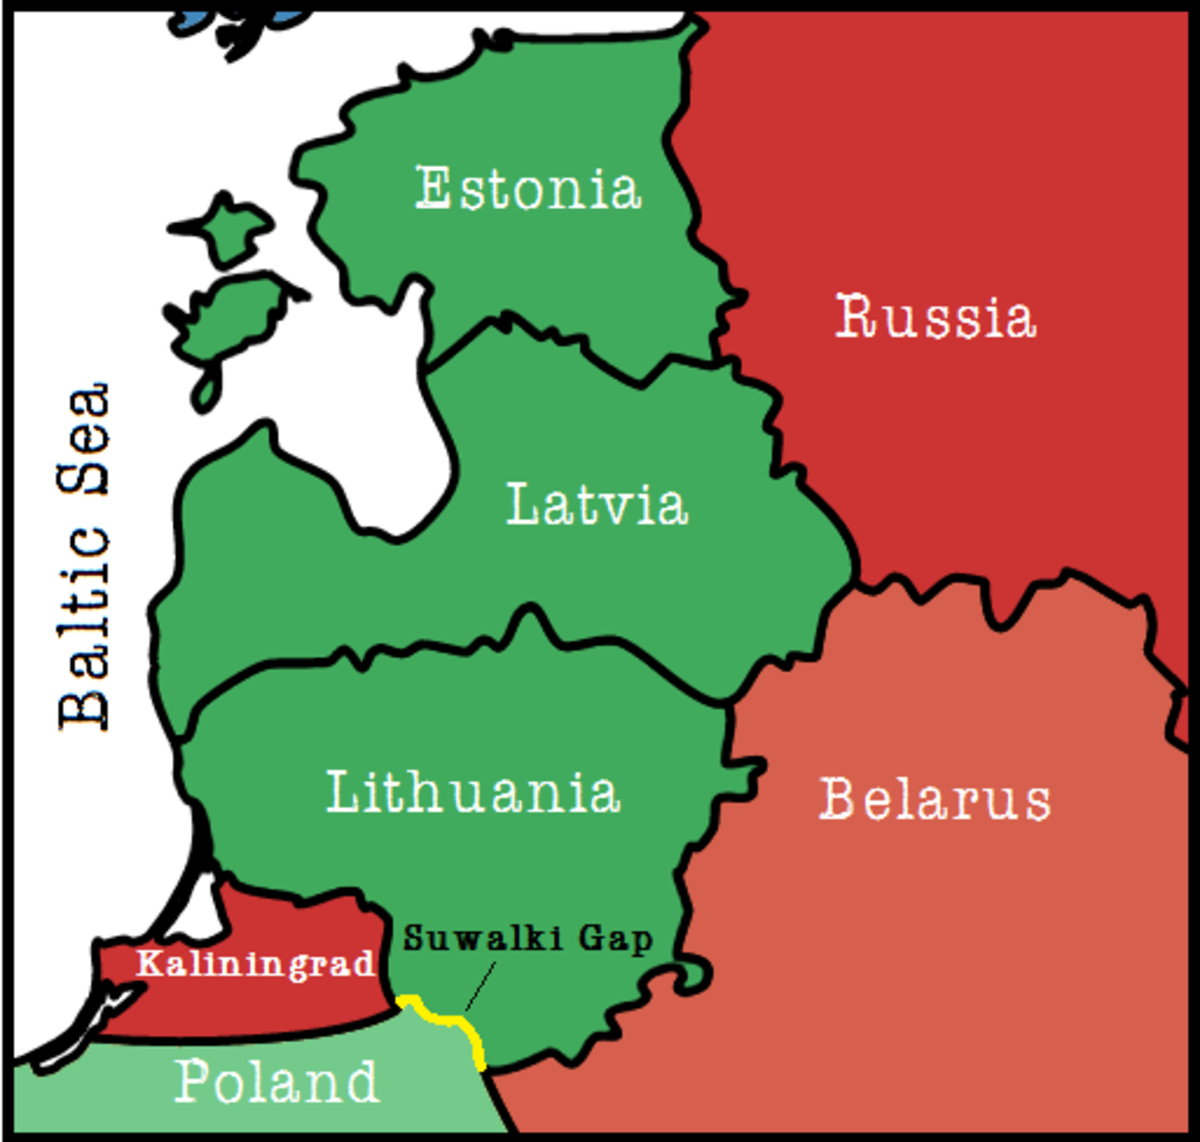 World Map After World War 3.3 Reasons Why World War Iii Could Start In The Baltic States Soapboxie